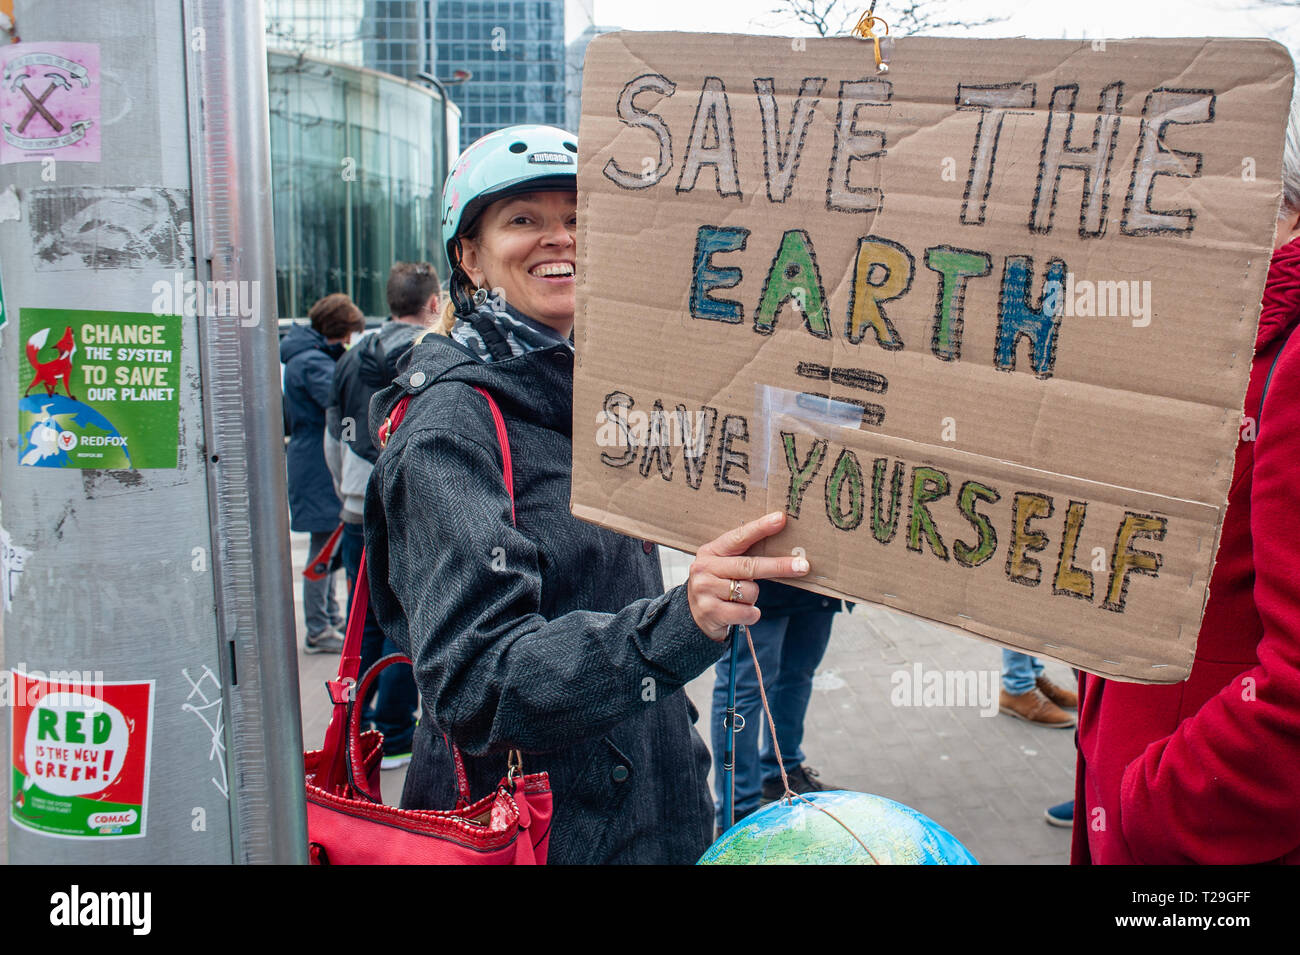 A woman is seen smiling while holding a placard during the demonstration. Thousands of people gathered as always at the Brussels North station to demand a declaration of a state of environmental emergency and a climate law to reduce C02 emissions by 55% by 2030, the climate as a top priority, the adoption of the Finance-Climate Pact, the respect of the Paris agreements and the protection of water and forests. - Stock Image